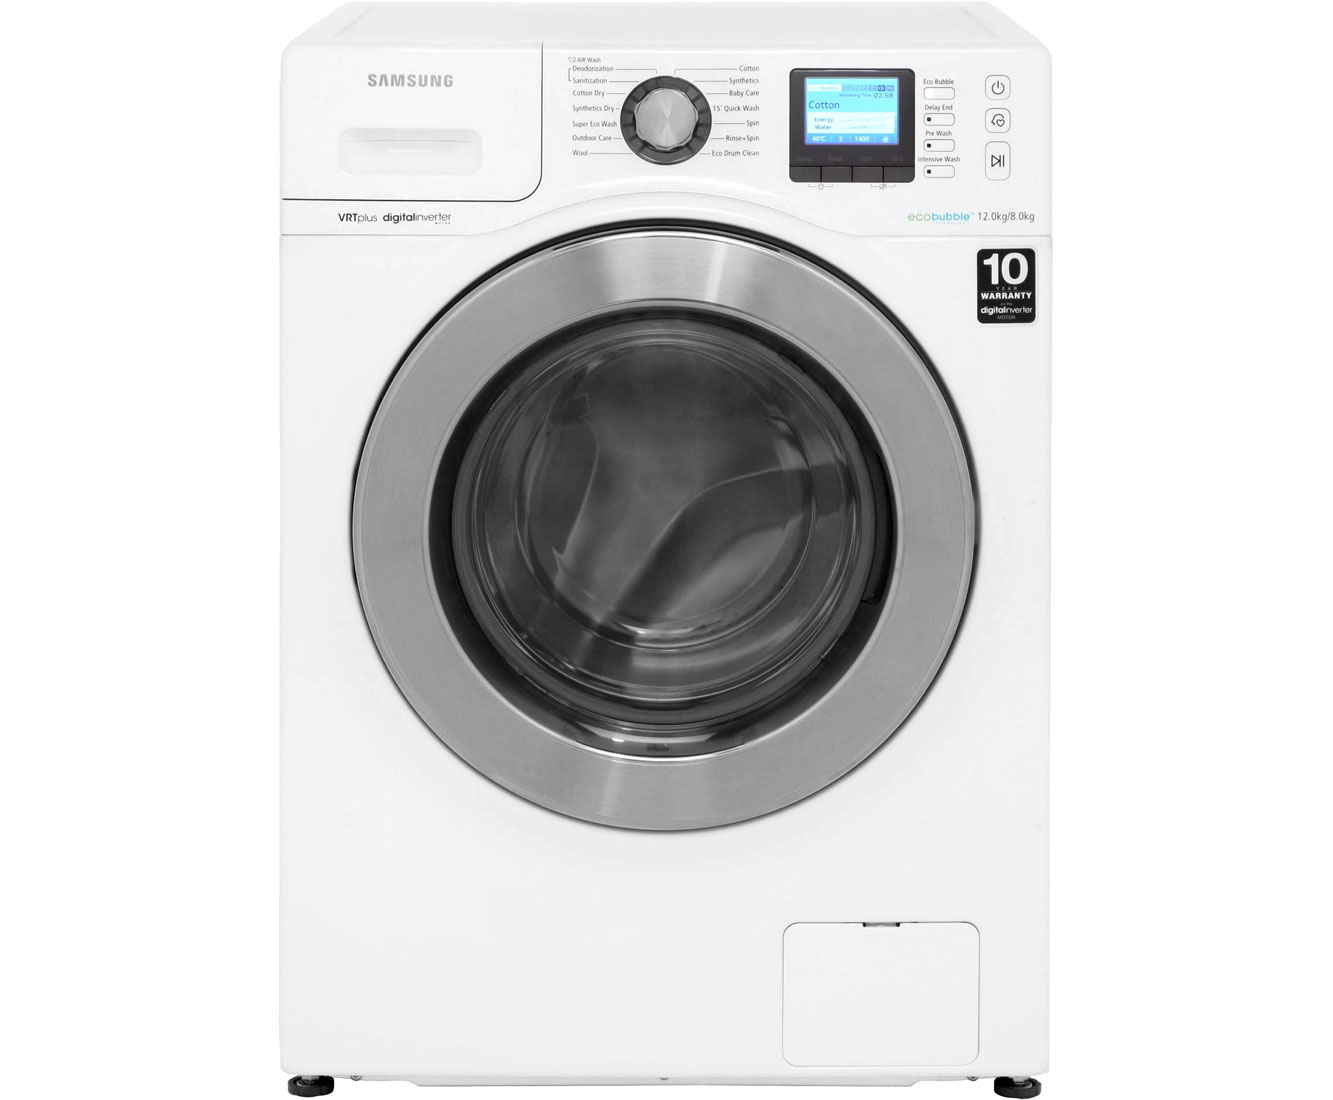 buy cheap samsung washer compare washer dryers prices. Black Bedroom Furniture Sets. Home Design Ideas